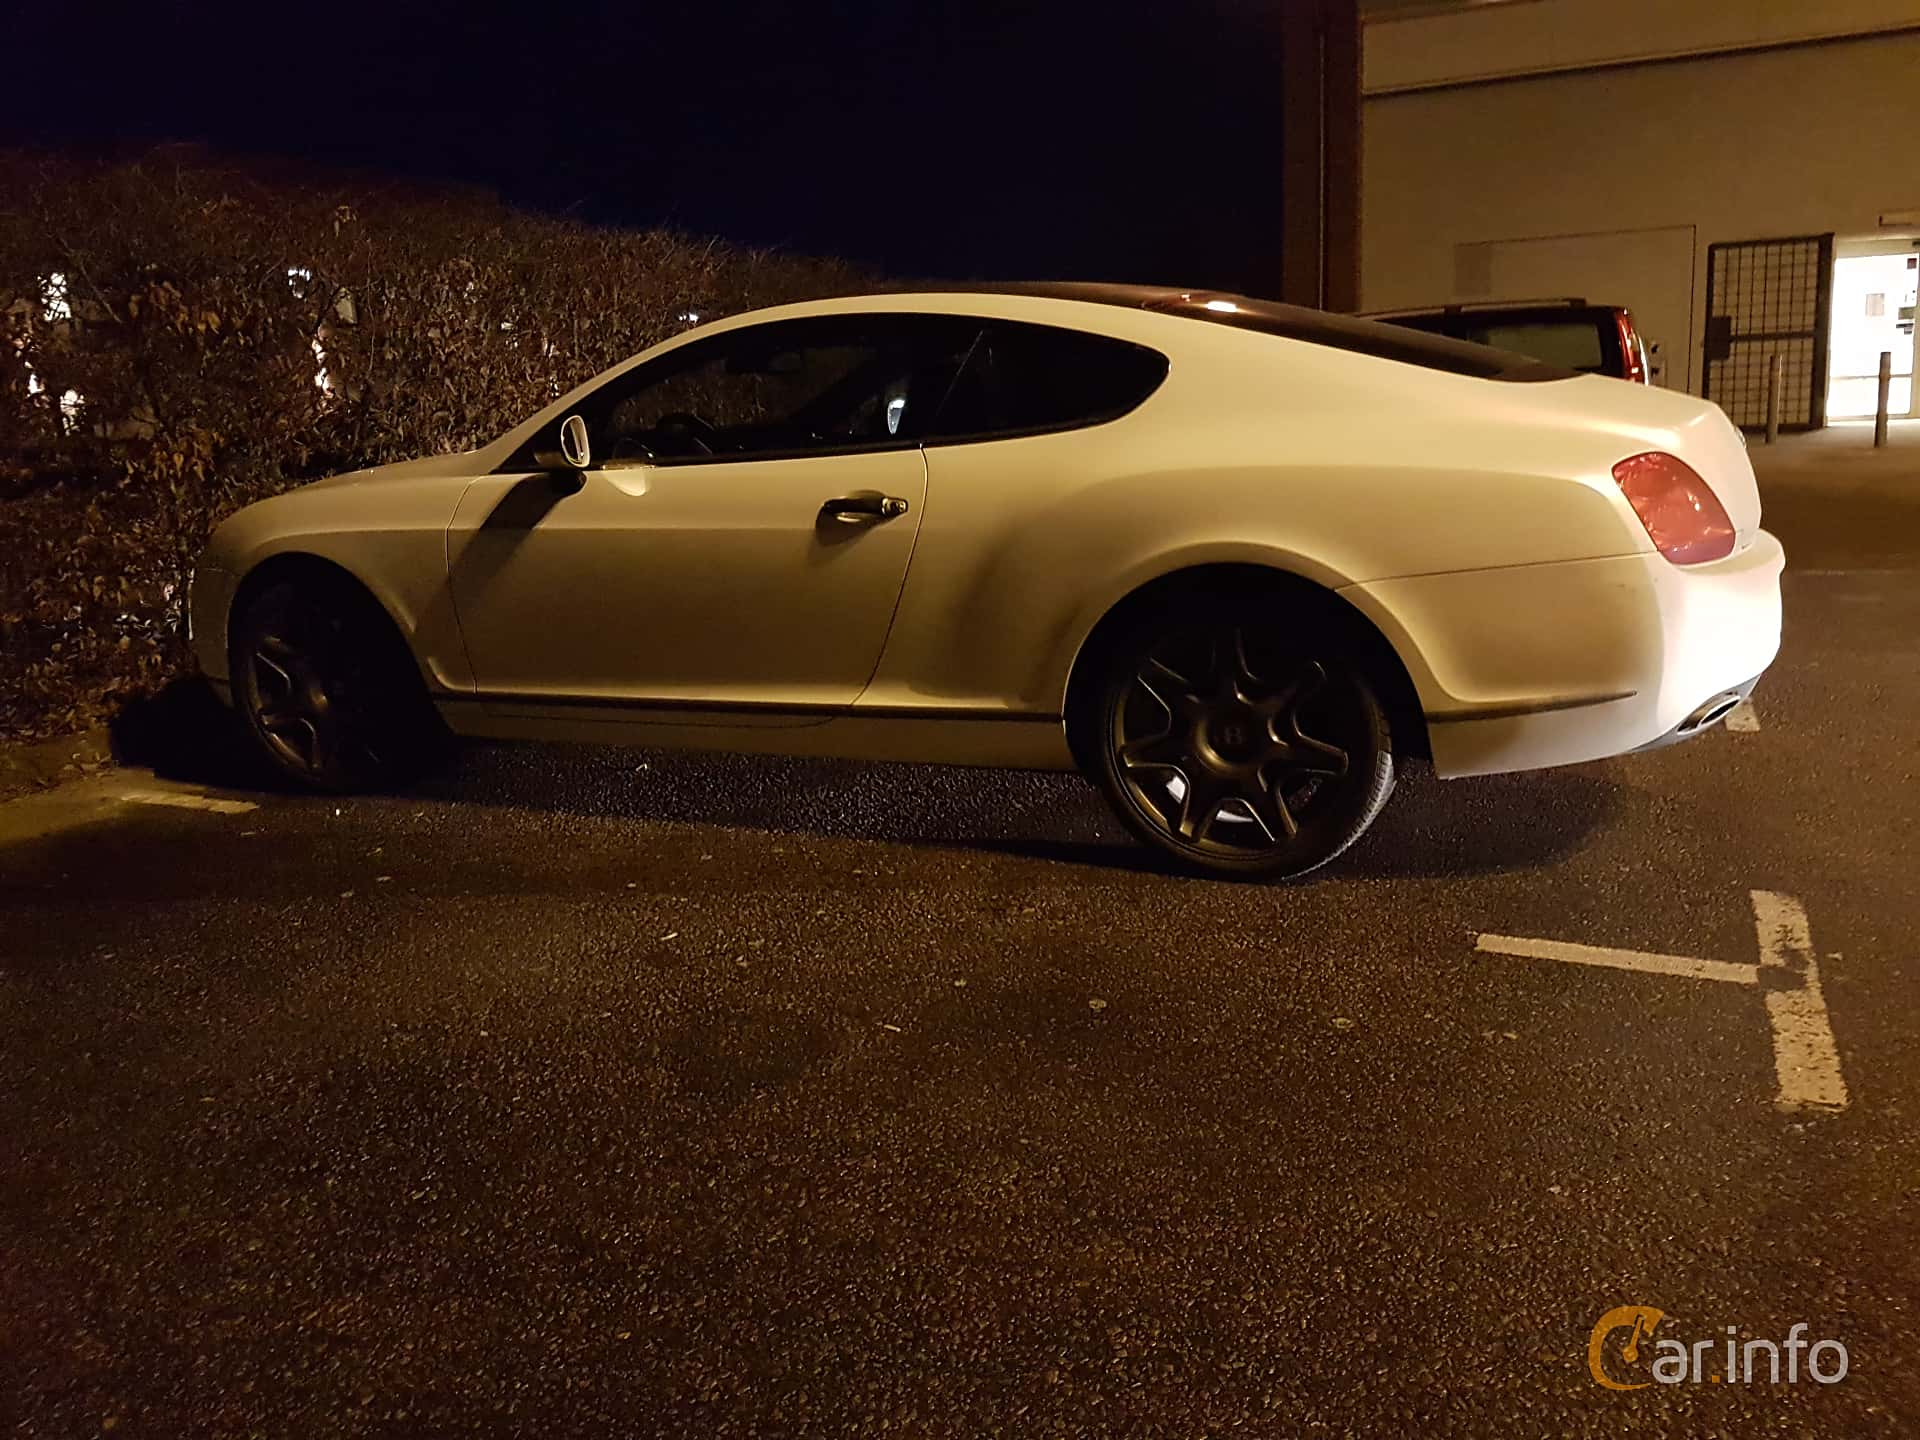 Bentley Continental GT 6.0 W12 Automatisk, 560hk, 2008